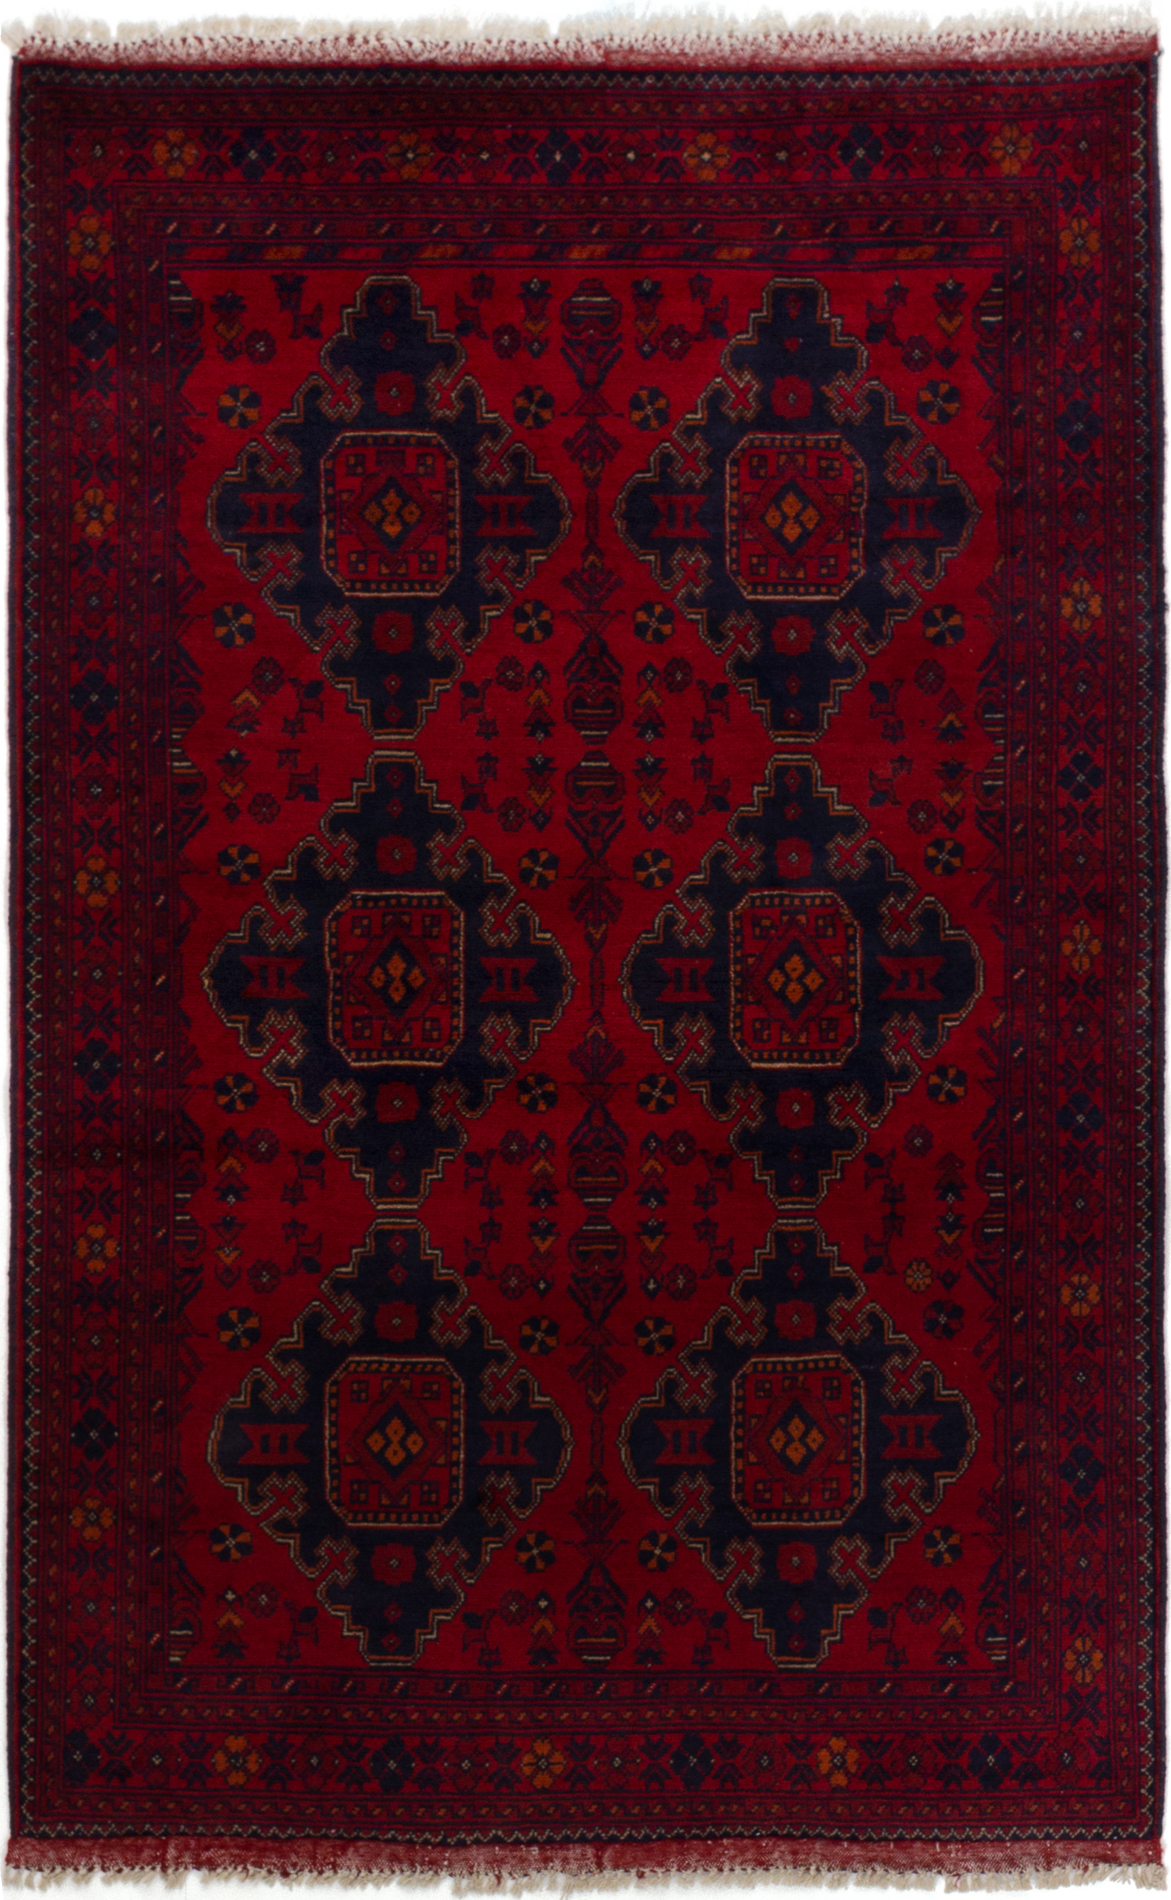 """Hand-knotted Finest Khal Mohammadi Red Wool Rug 4'0"""" x 6'5""""  Size: 4'0"""" x 6'5"""""""